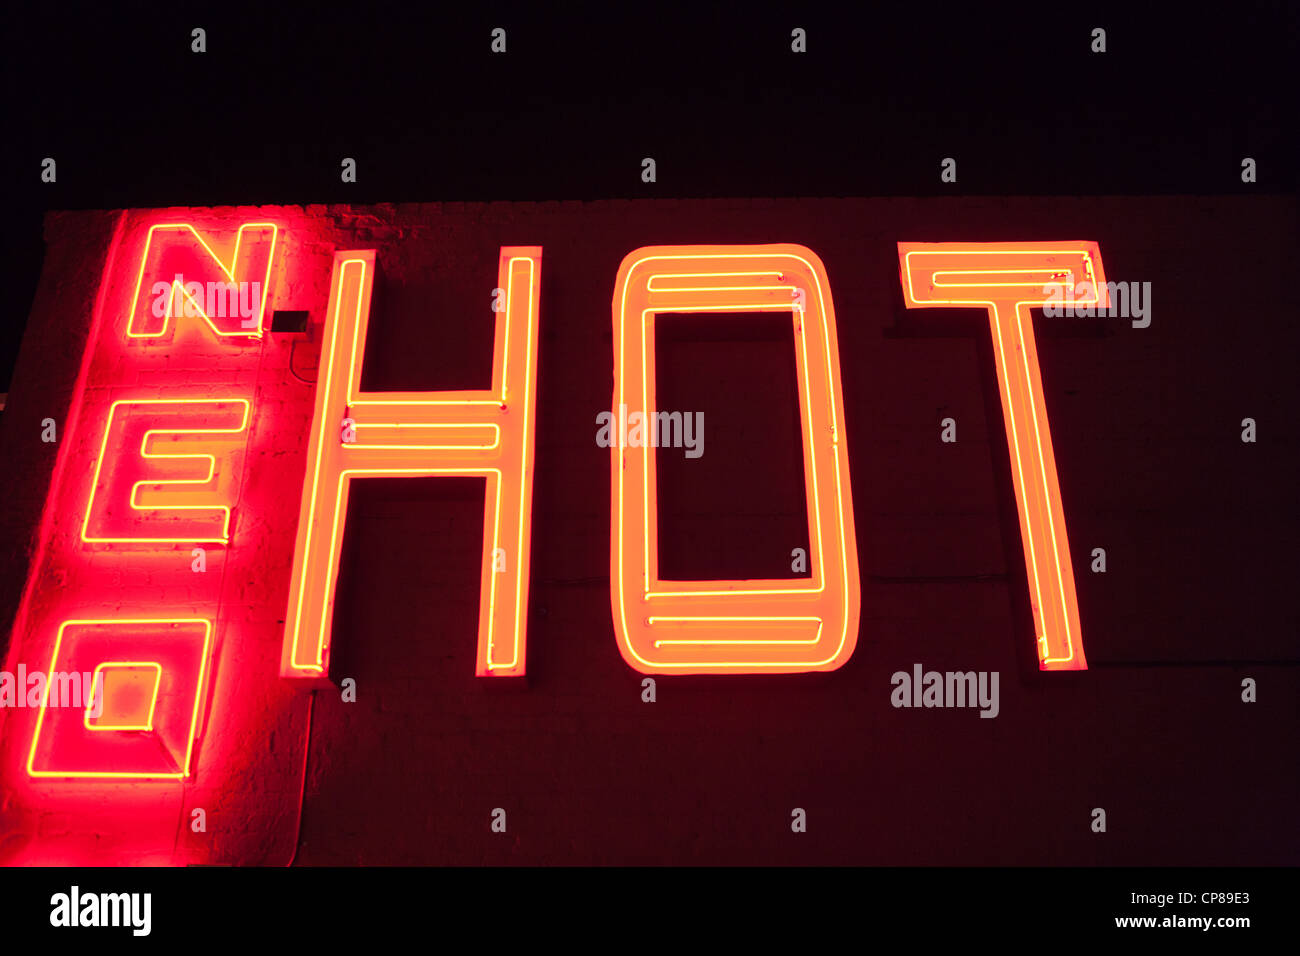 Neon sign HOT - Stock Image